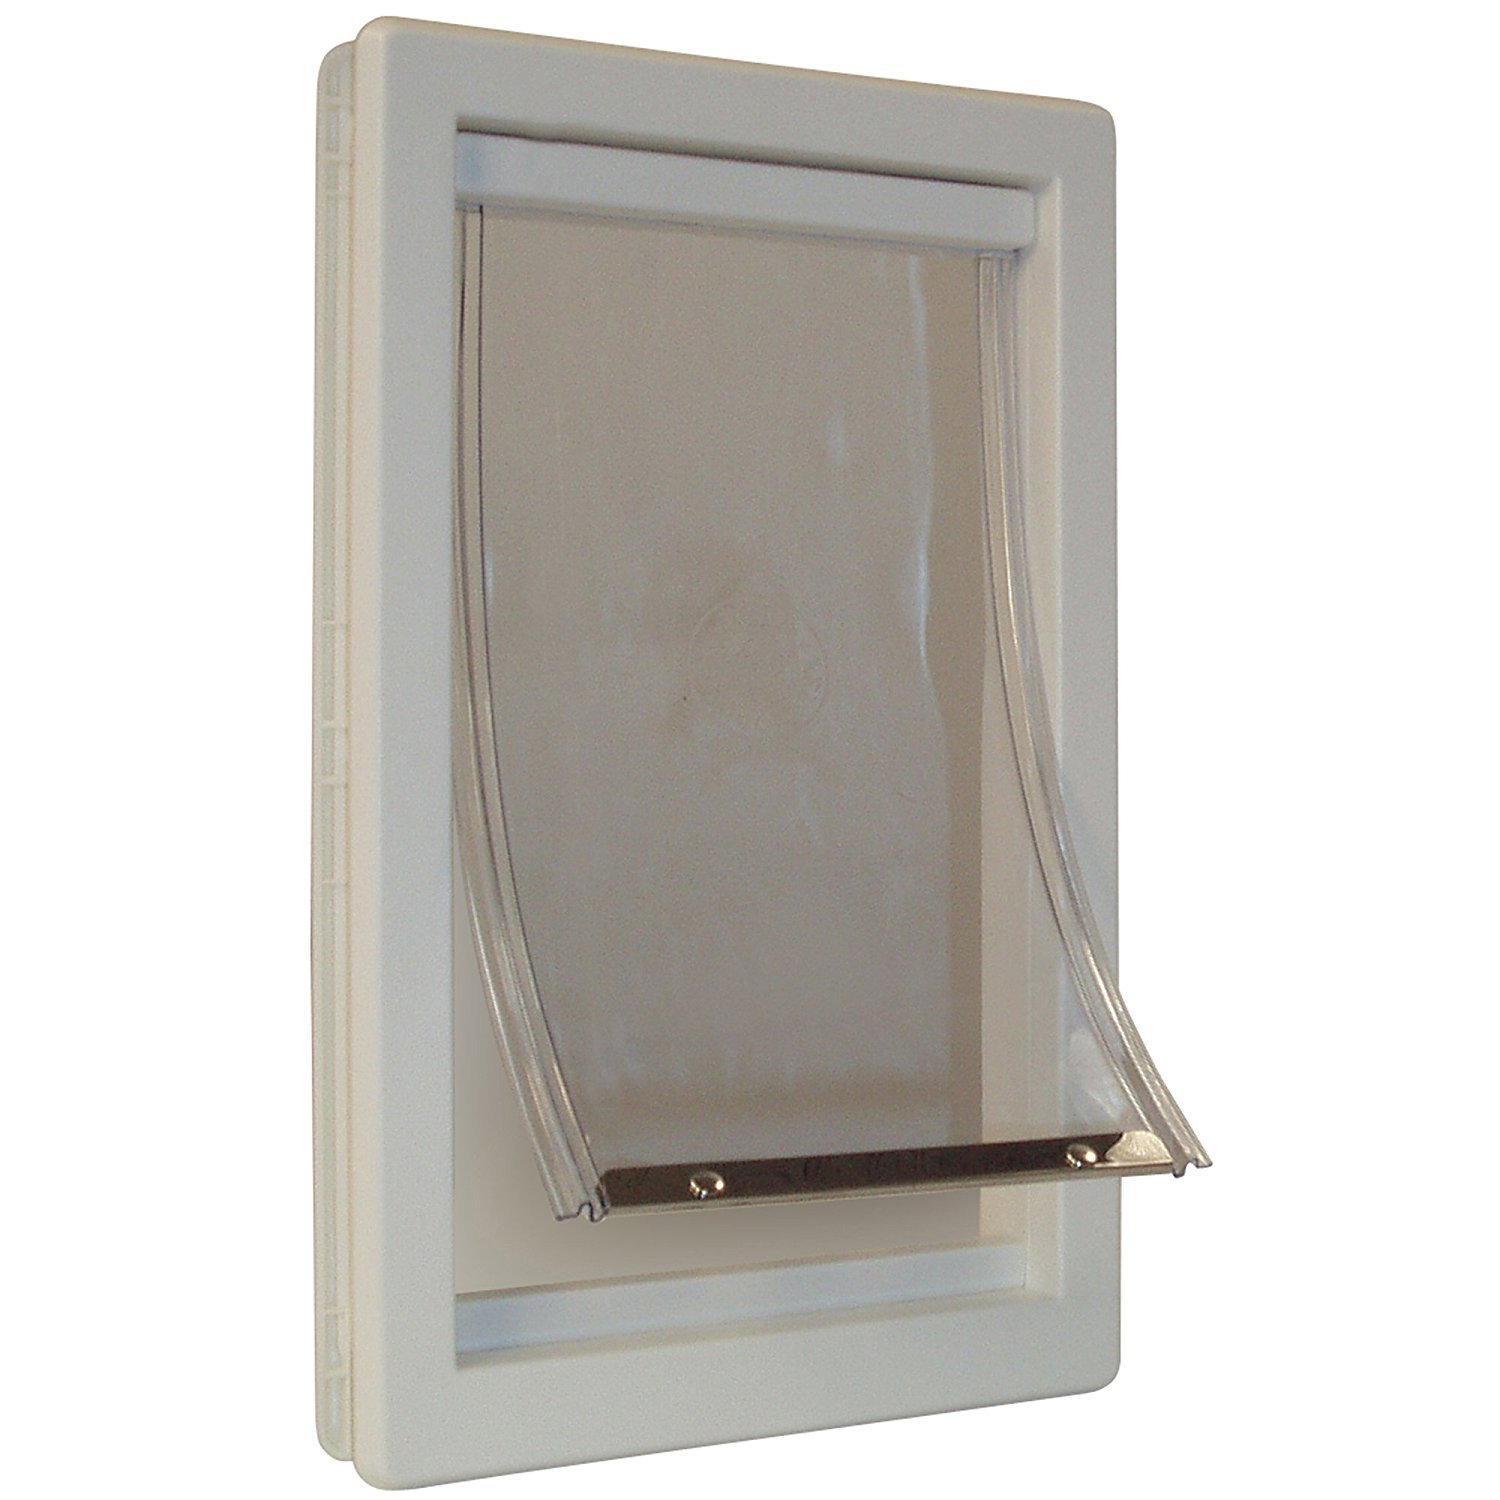 Best 5 Best Electronic Dog Door Reviews For Dogs Safety 2019 With Pictures